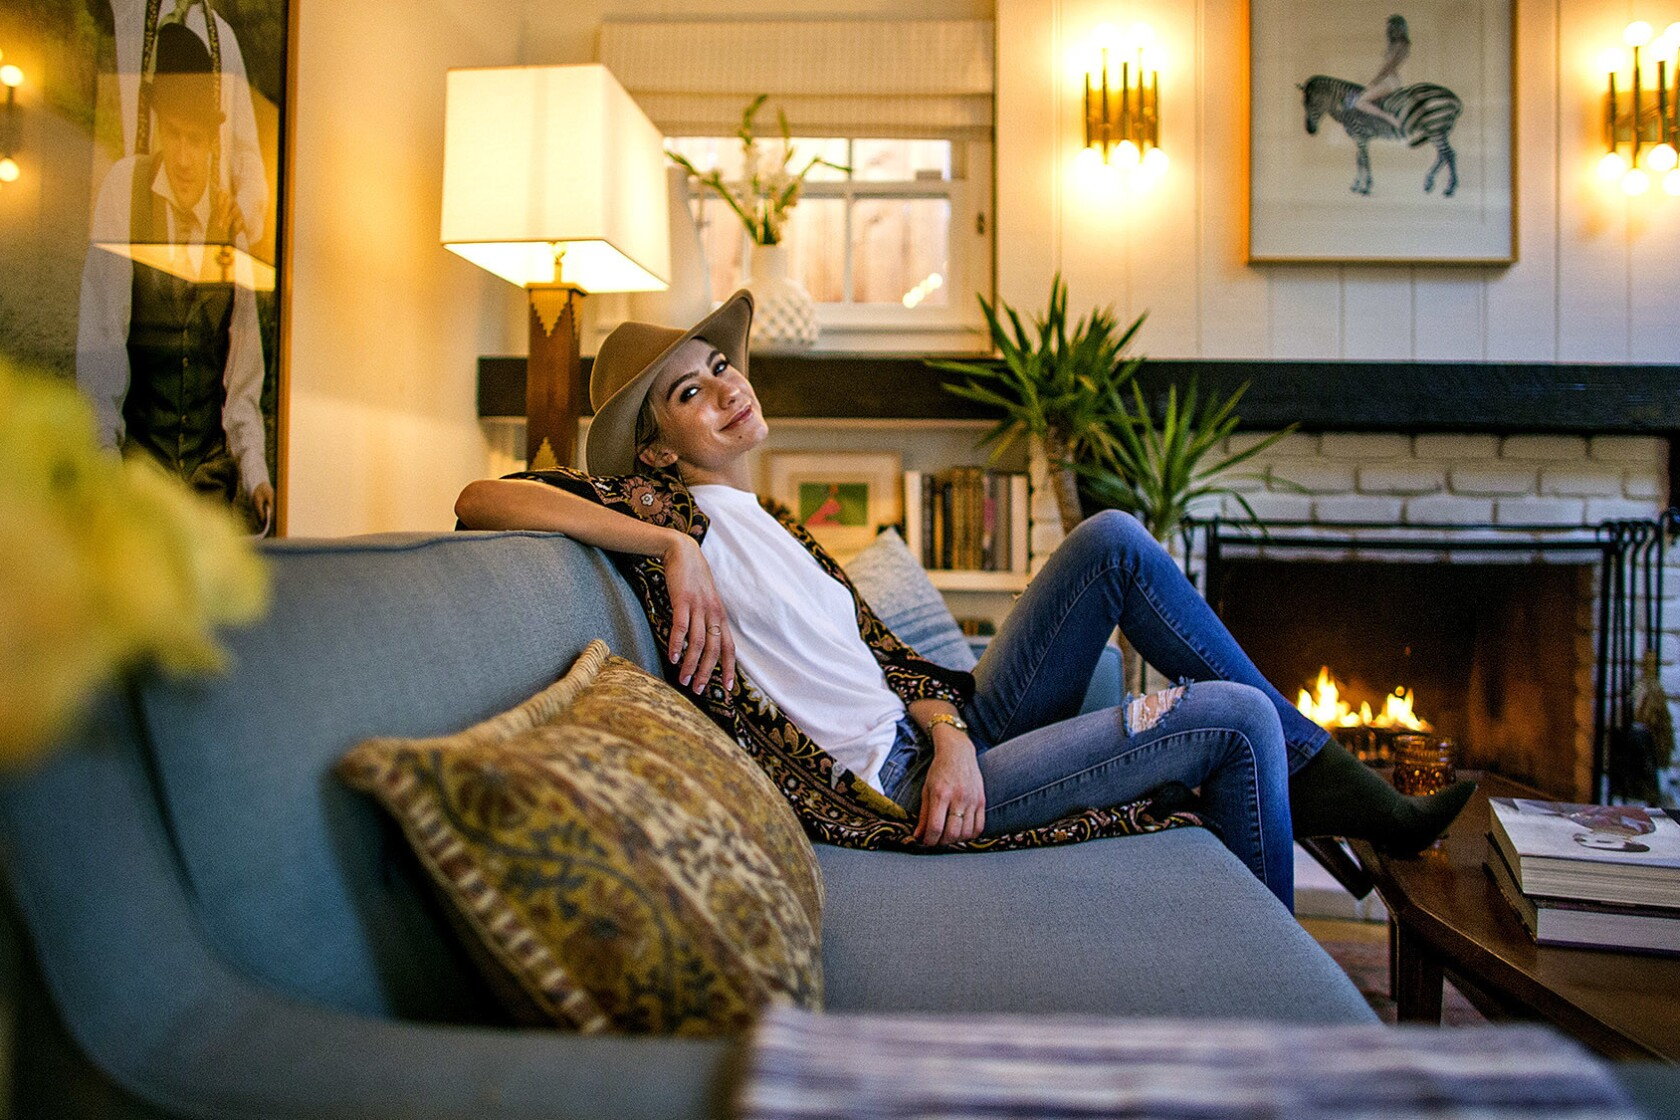 My Favorite Room Chelsea Kane Keeps Her Family Close With A Nostalgia Laden Living Room Los Angeles Times